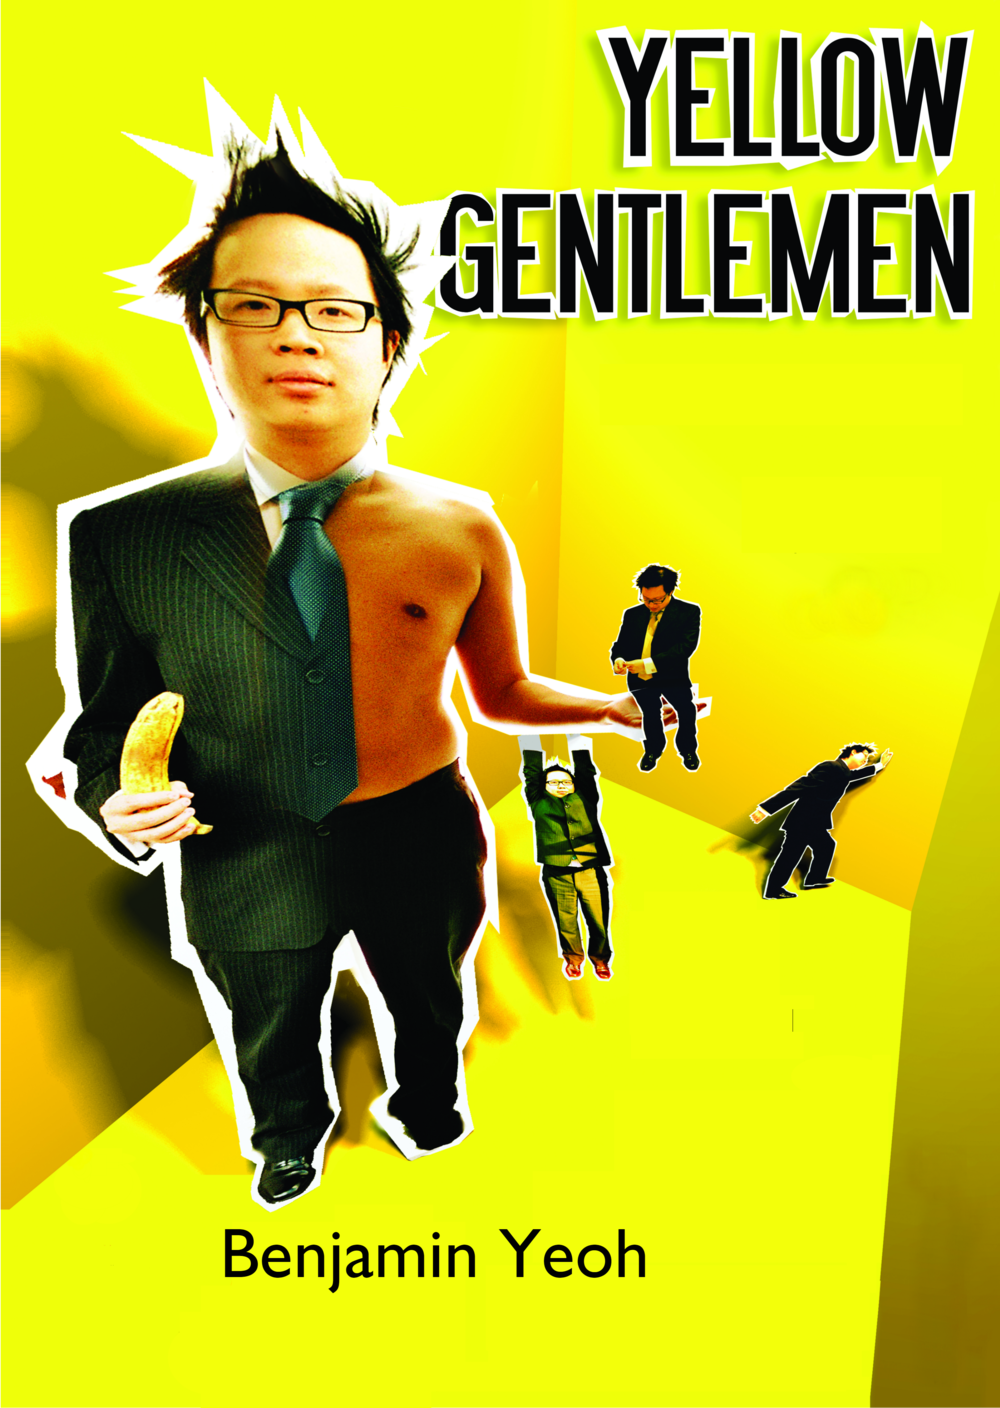 (c) Alex Evans and Benjamin Yeoh.  Art work design used for poster and book cover for 2006 performance of Yellow Gentlemen.